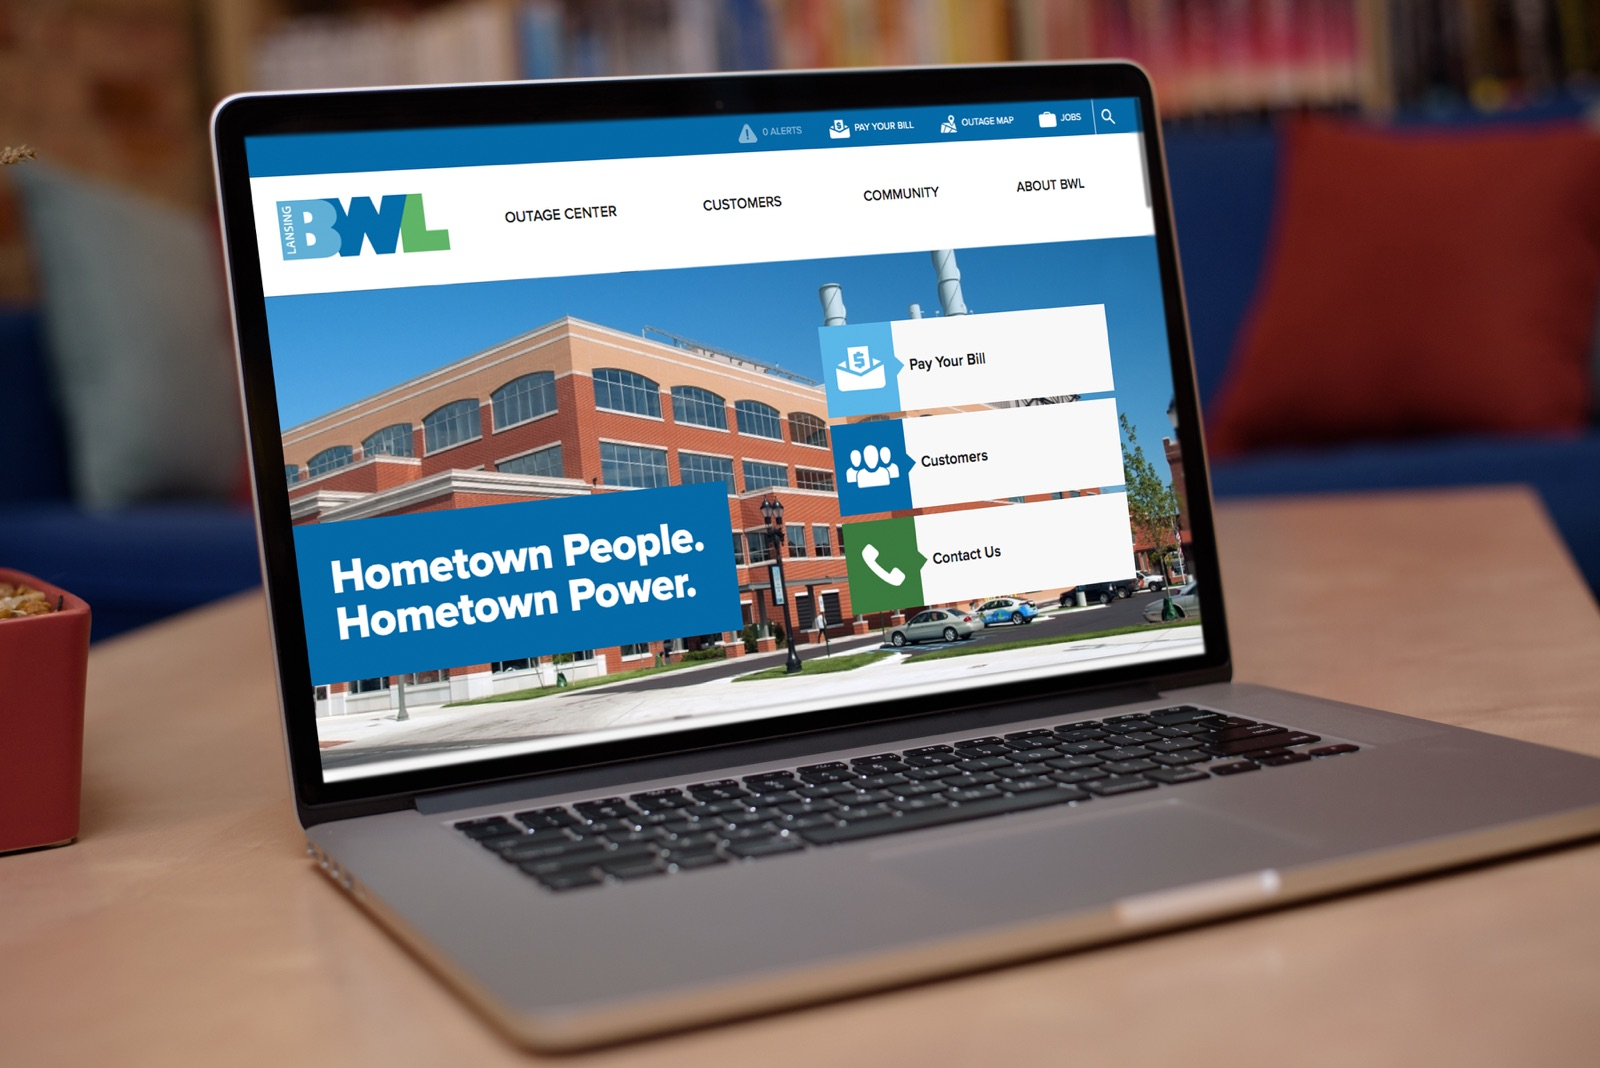 The BWL website homepage on a laptop